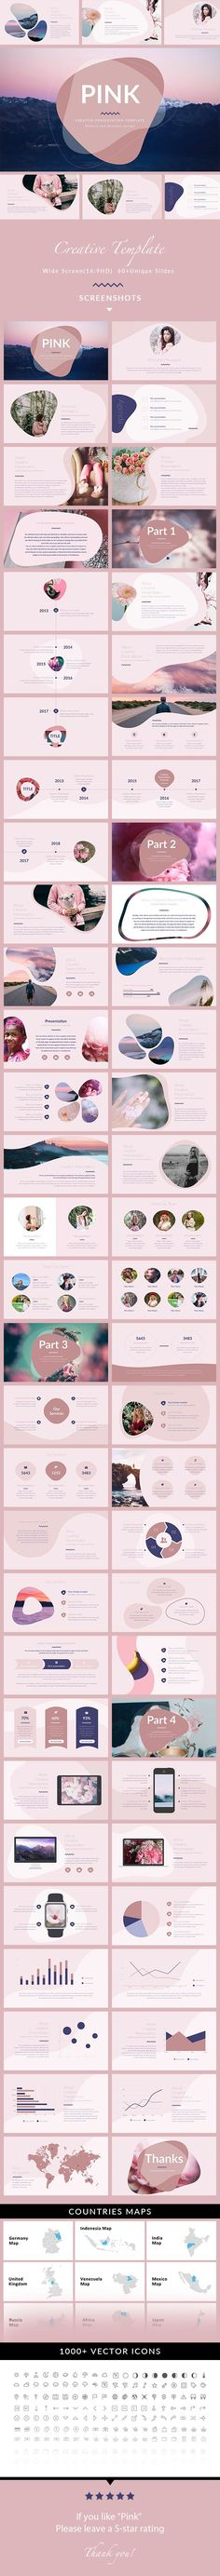 Pink  Minimal & Creative Keynote Template — Keynote KEY #1920x1080 #modern • Download ➝ https://graphicriver.net/item/pink-minimal-creative-keynote-template/20321940?ref=pxcr